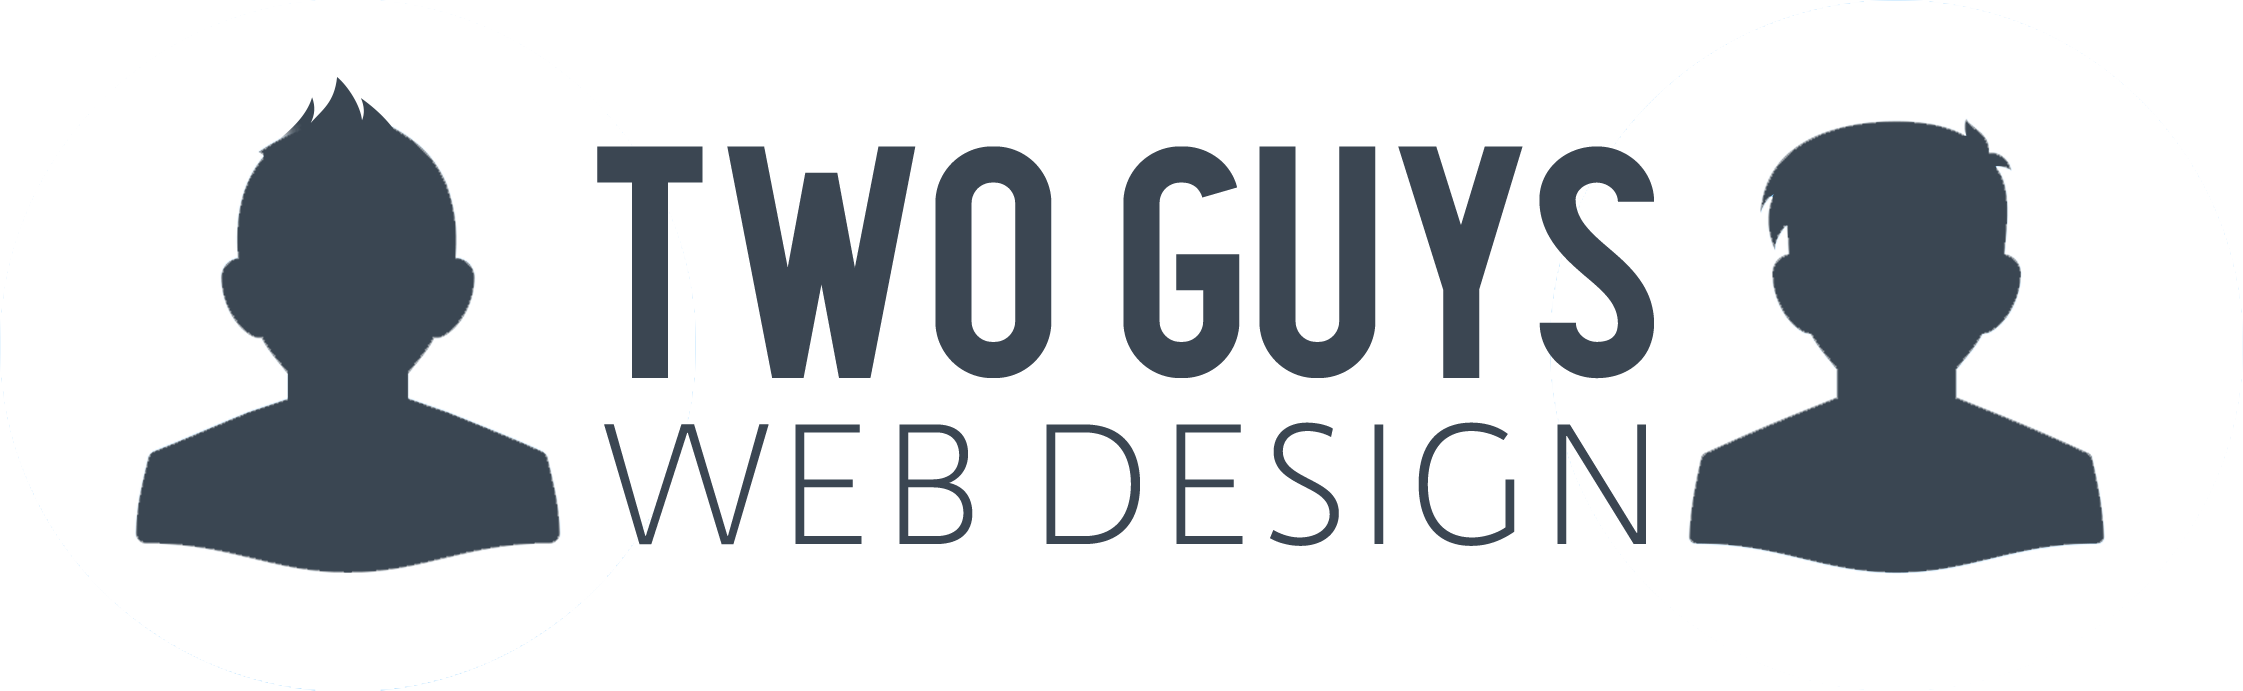 Two Guys Web Design